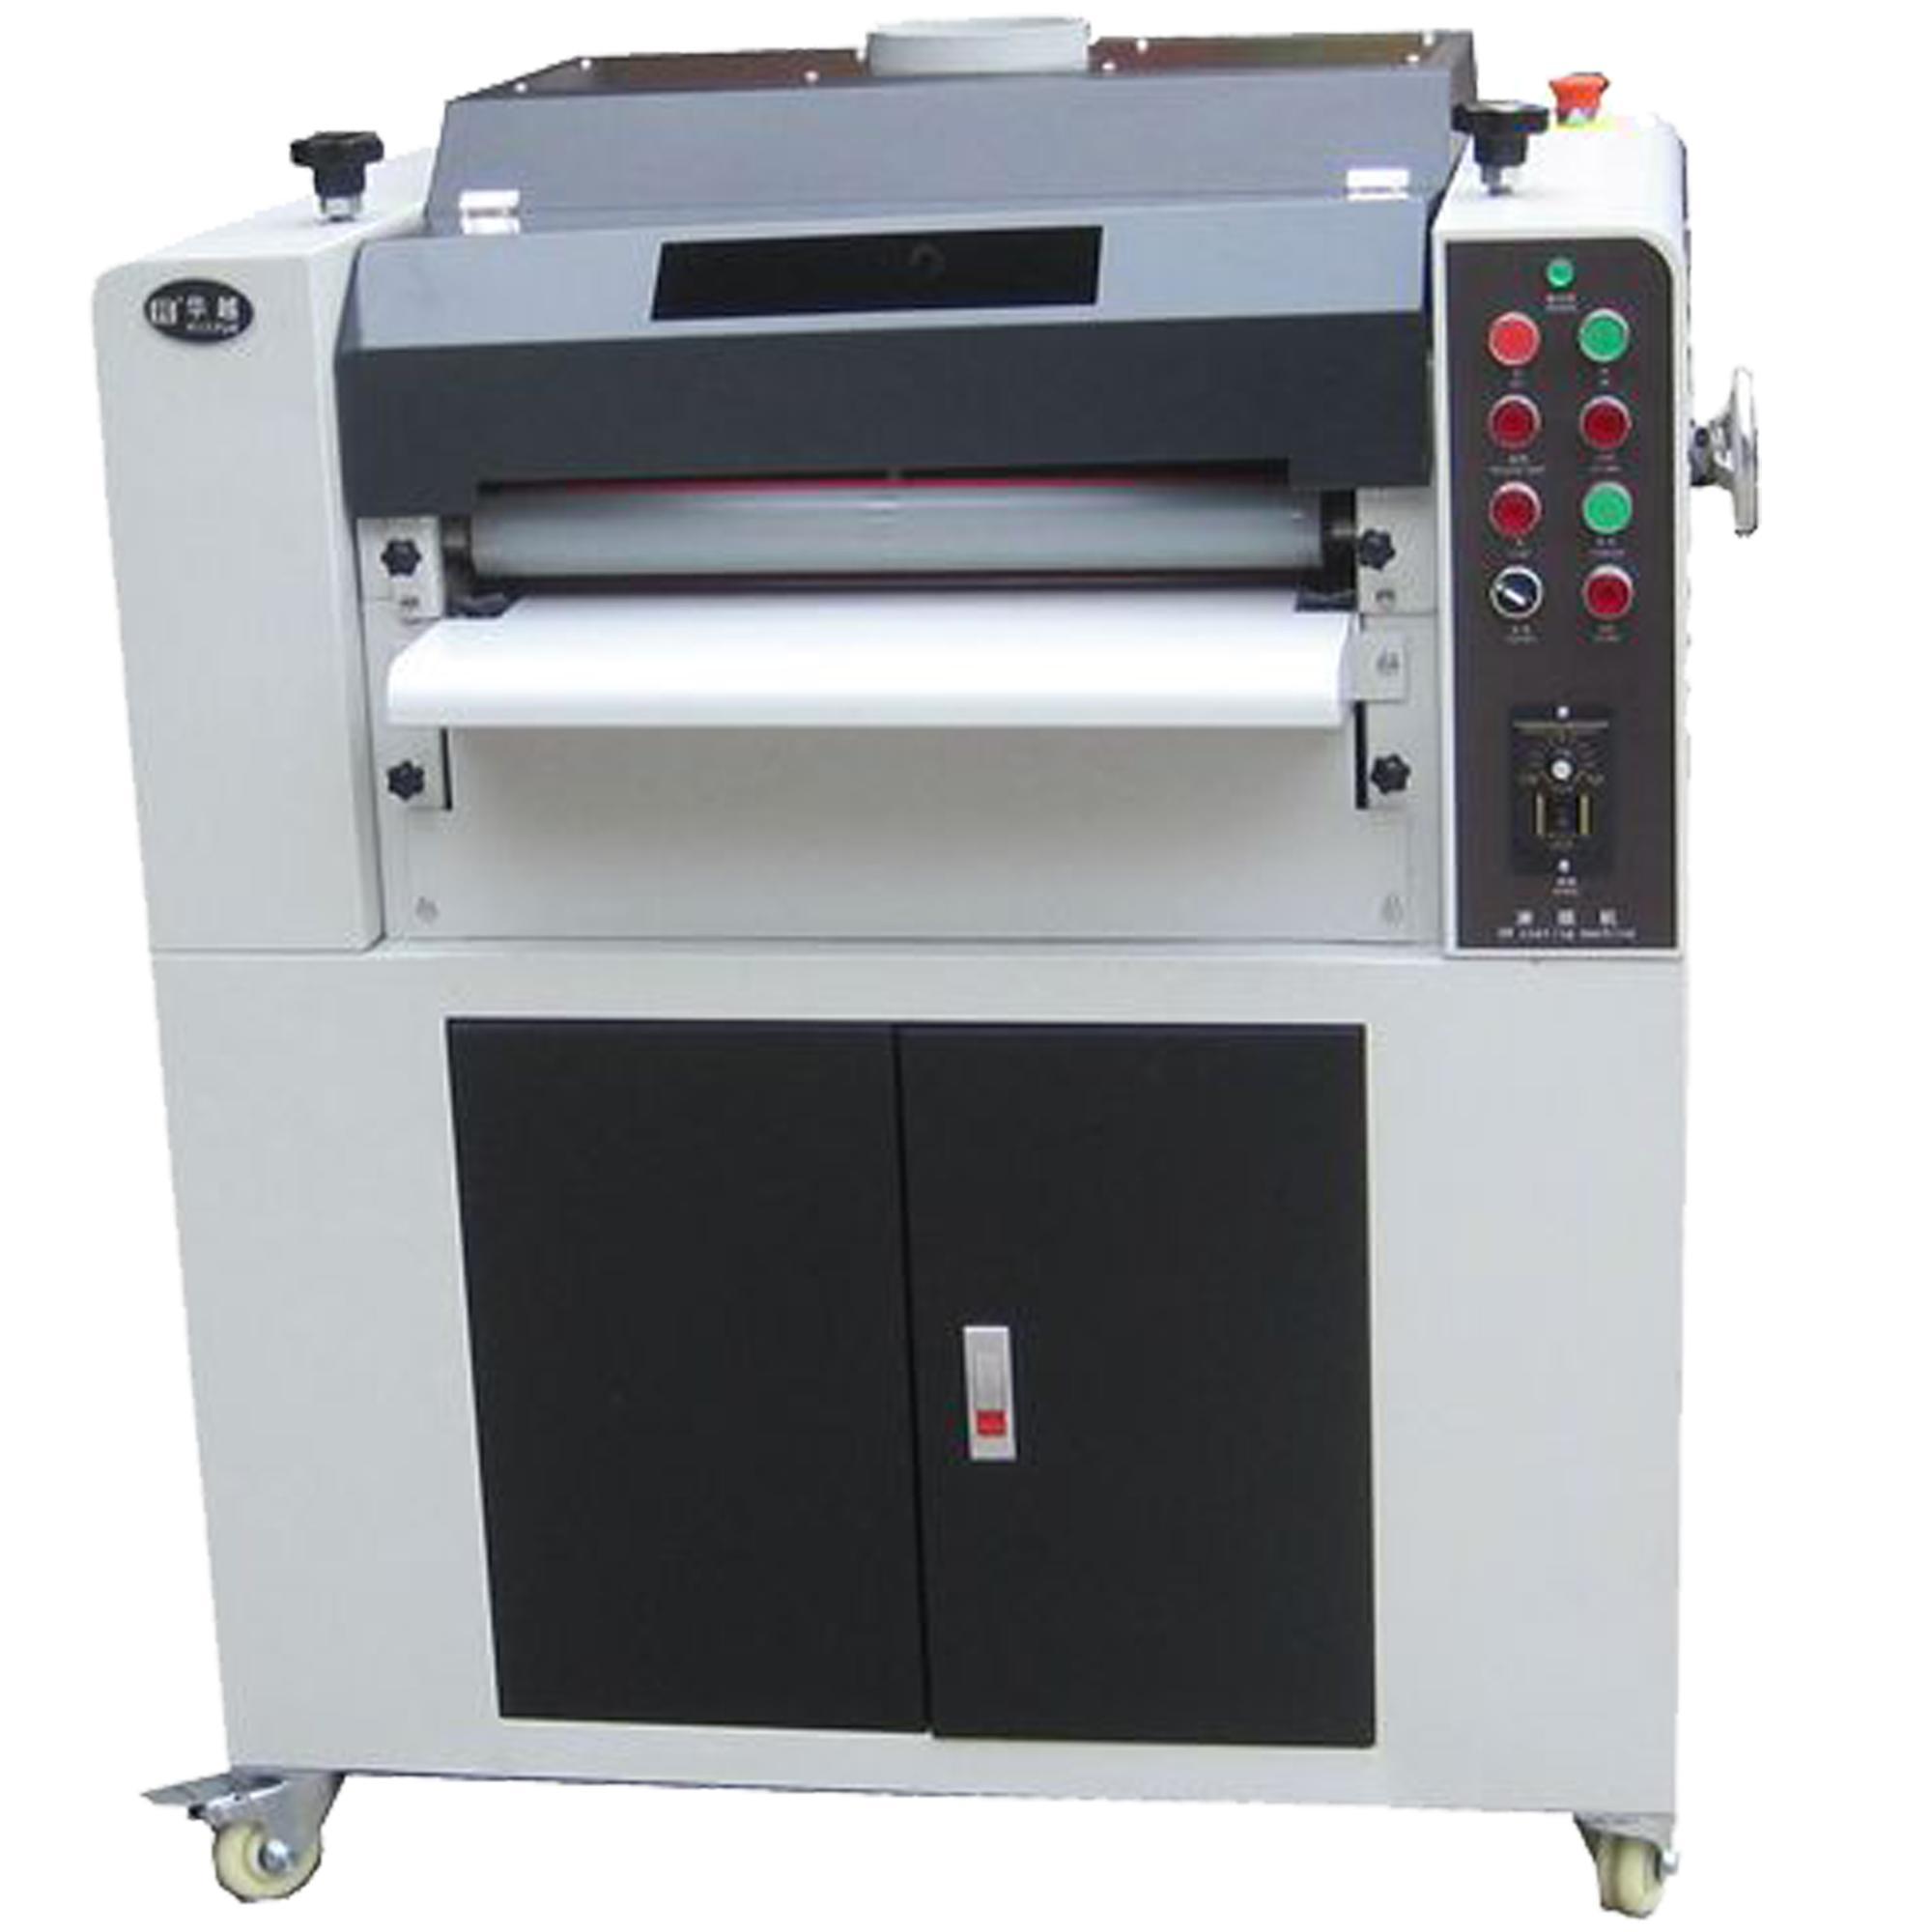 24 inch hoge kwaliteit meerdere patroon rollers uv coating machine, uv lak machine, uv coating